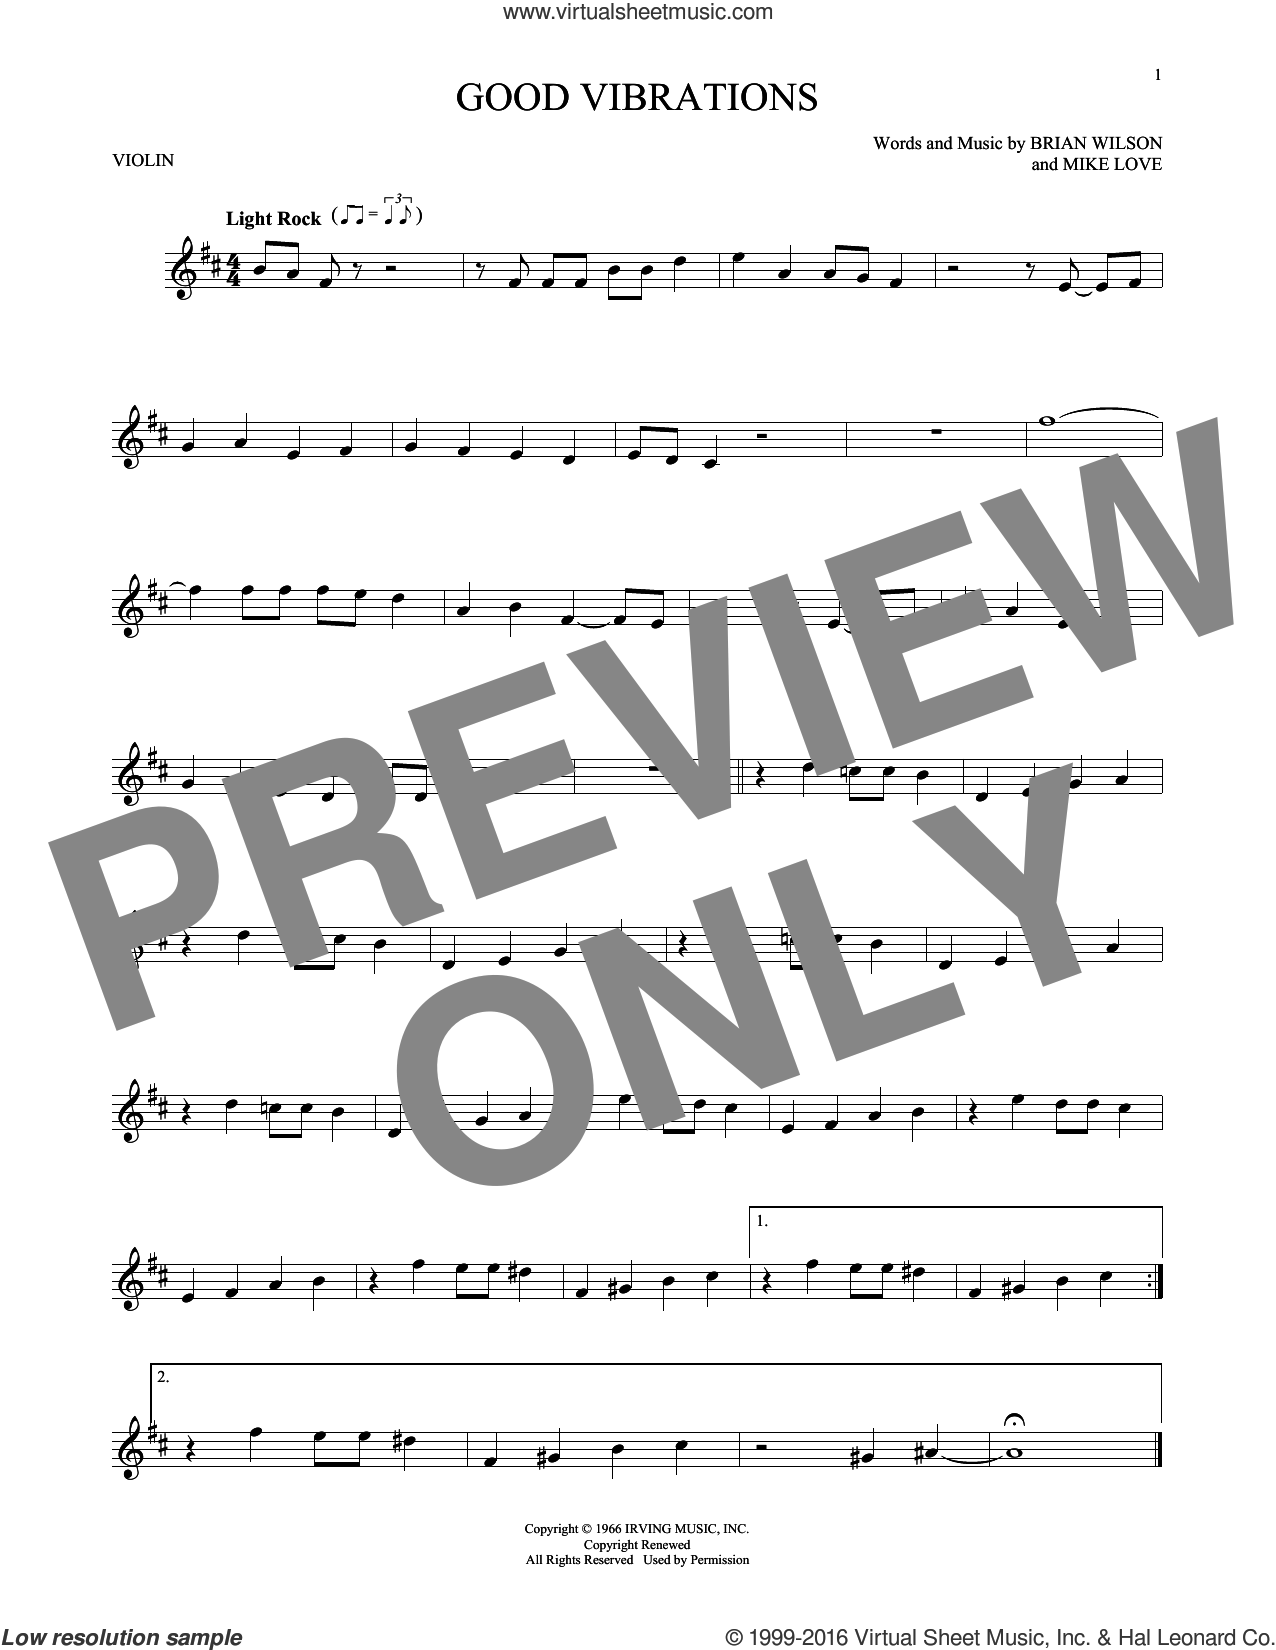 Good Vibrations sheet music for violin solo by Mike Love